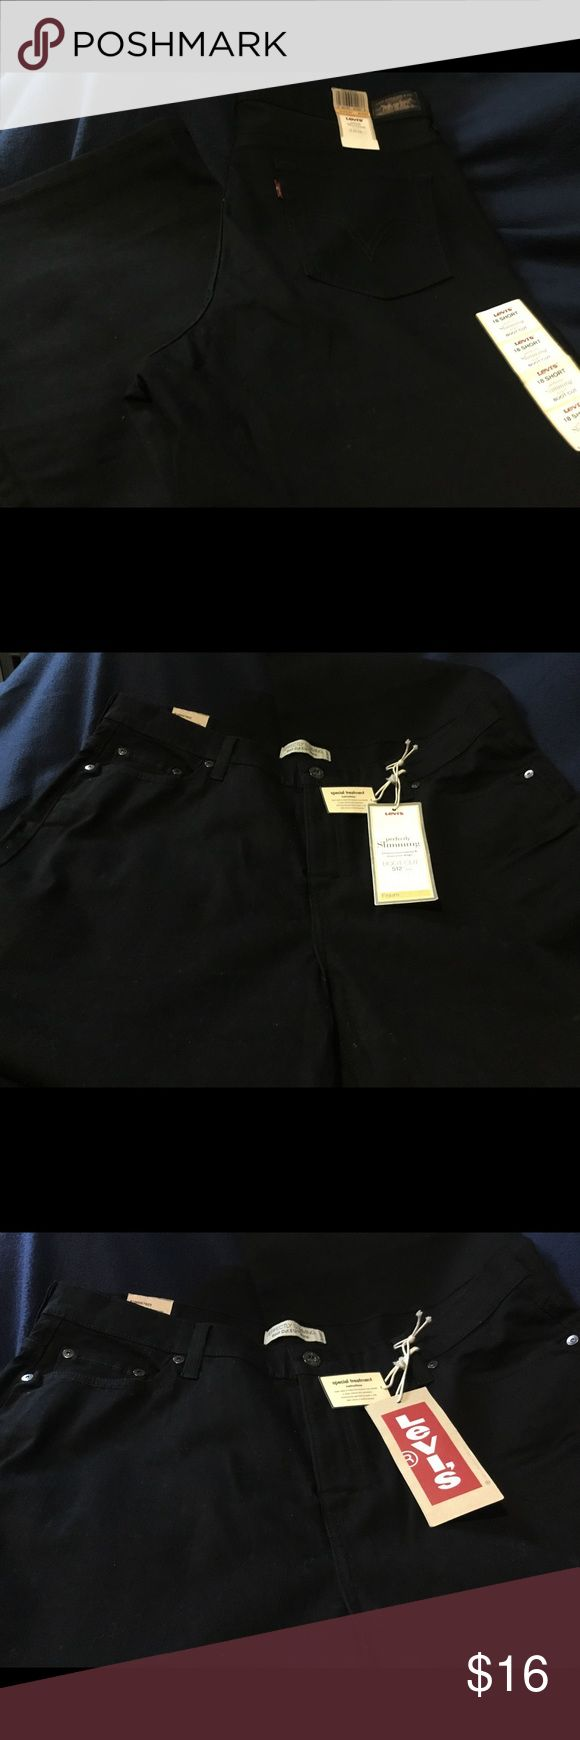 Levi's 512 Bootcut perfectly slimming Jeans Levi's 512 Bootcut perfectly slimming Jeans size 18s misses. Flattens your tummy and slims your shape. Levi's Jeans Boot Cut